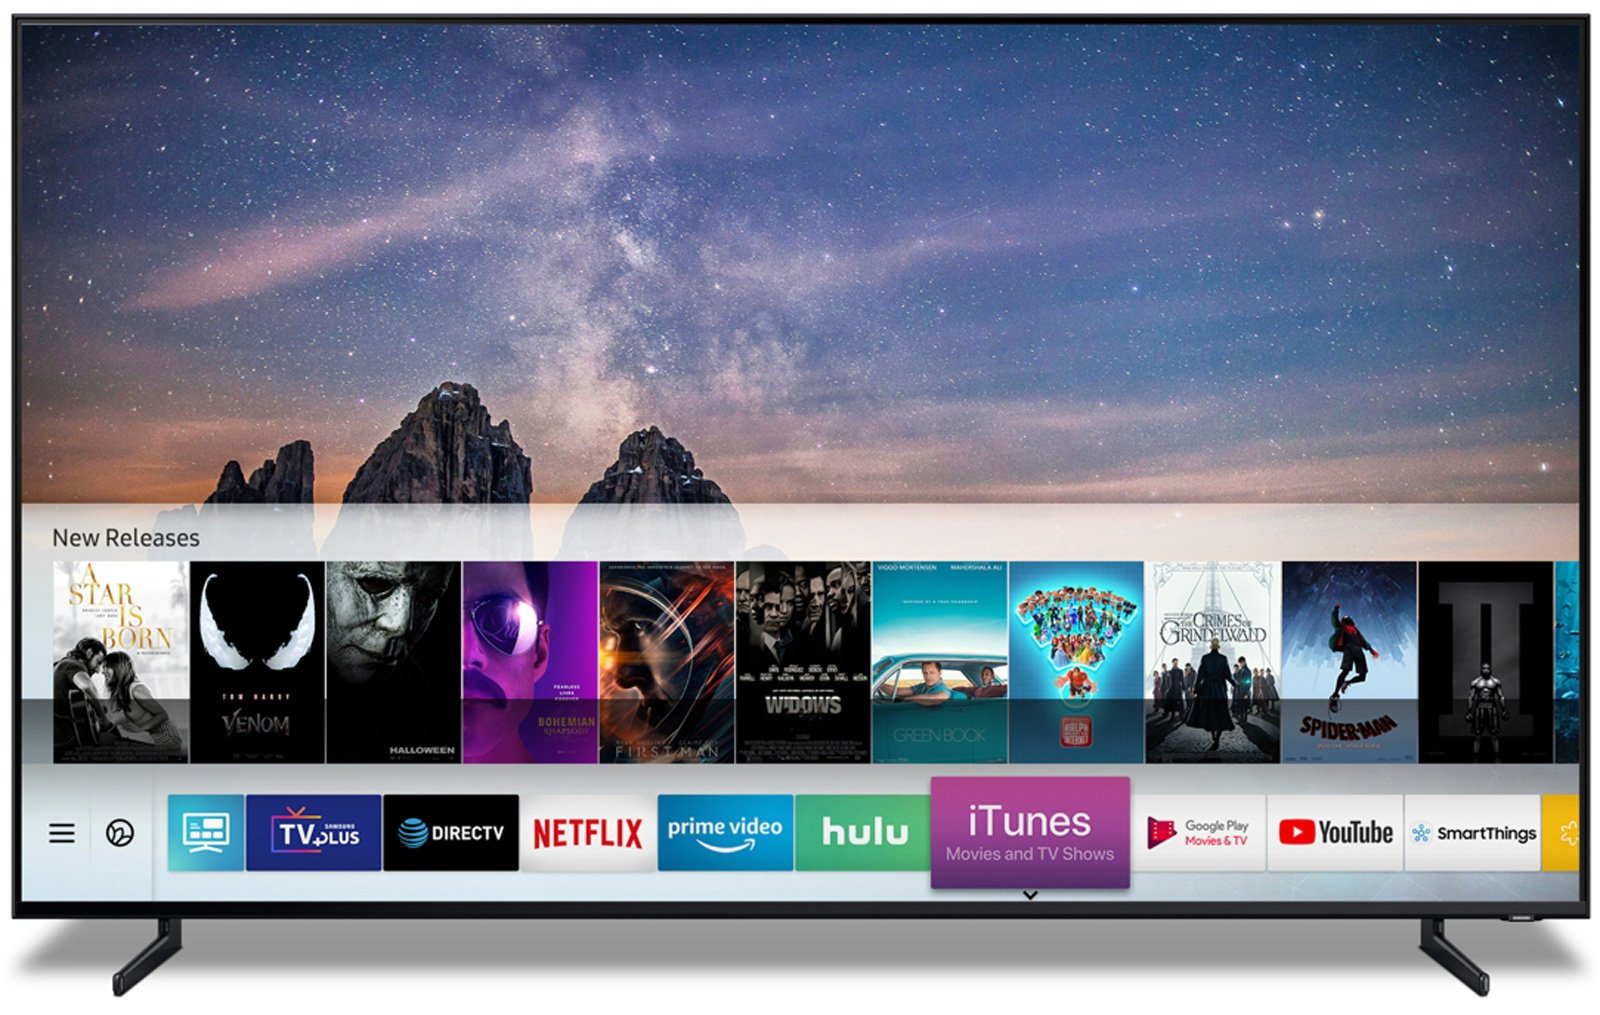 iTunes Airplay 2 Samsung TV 2019